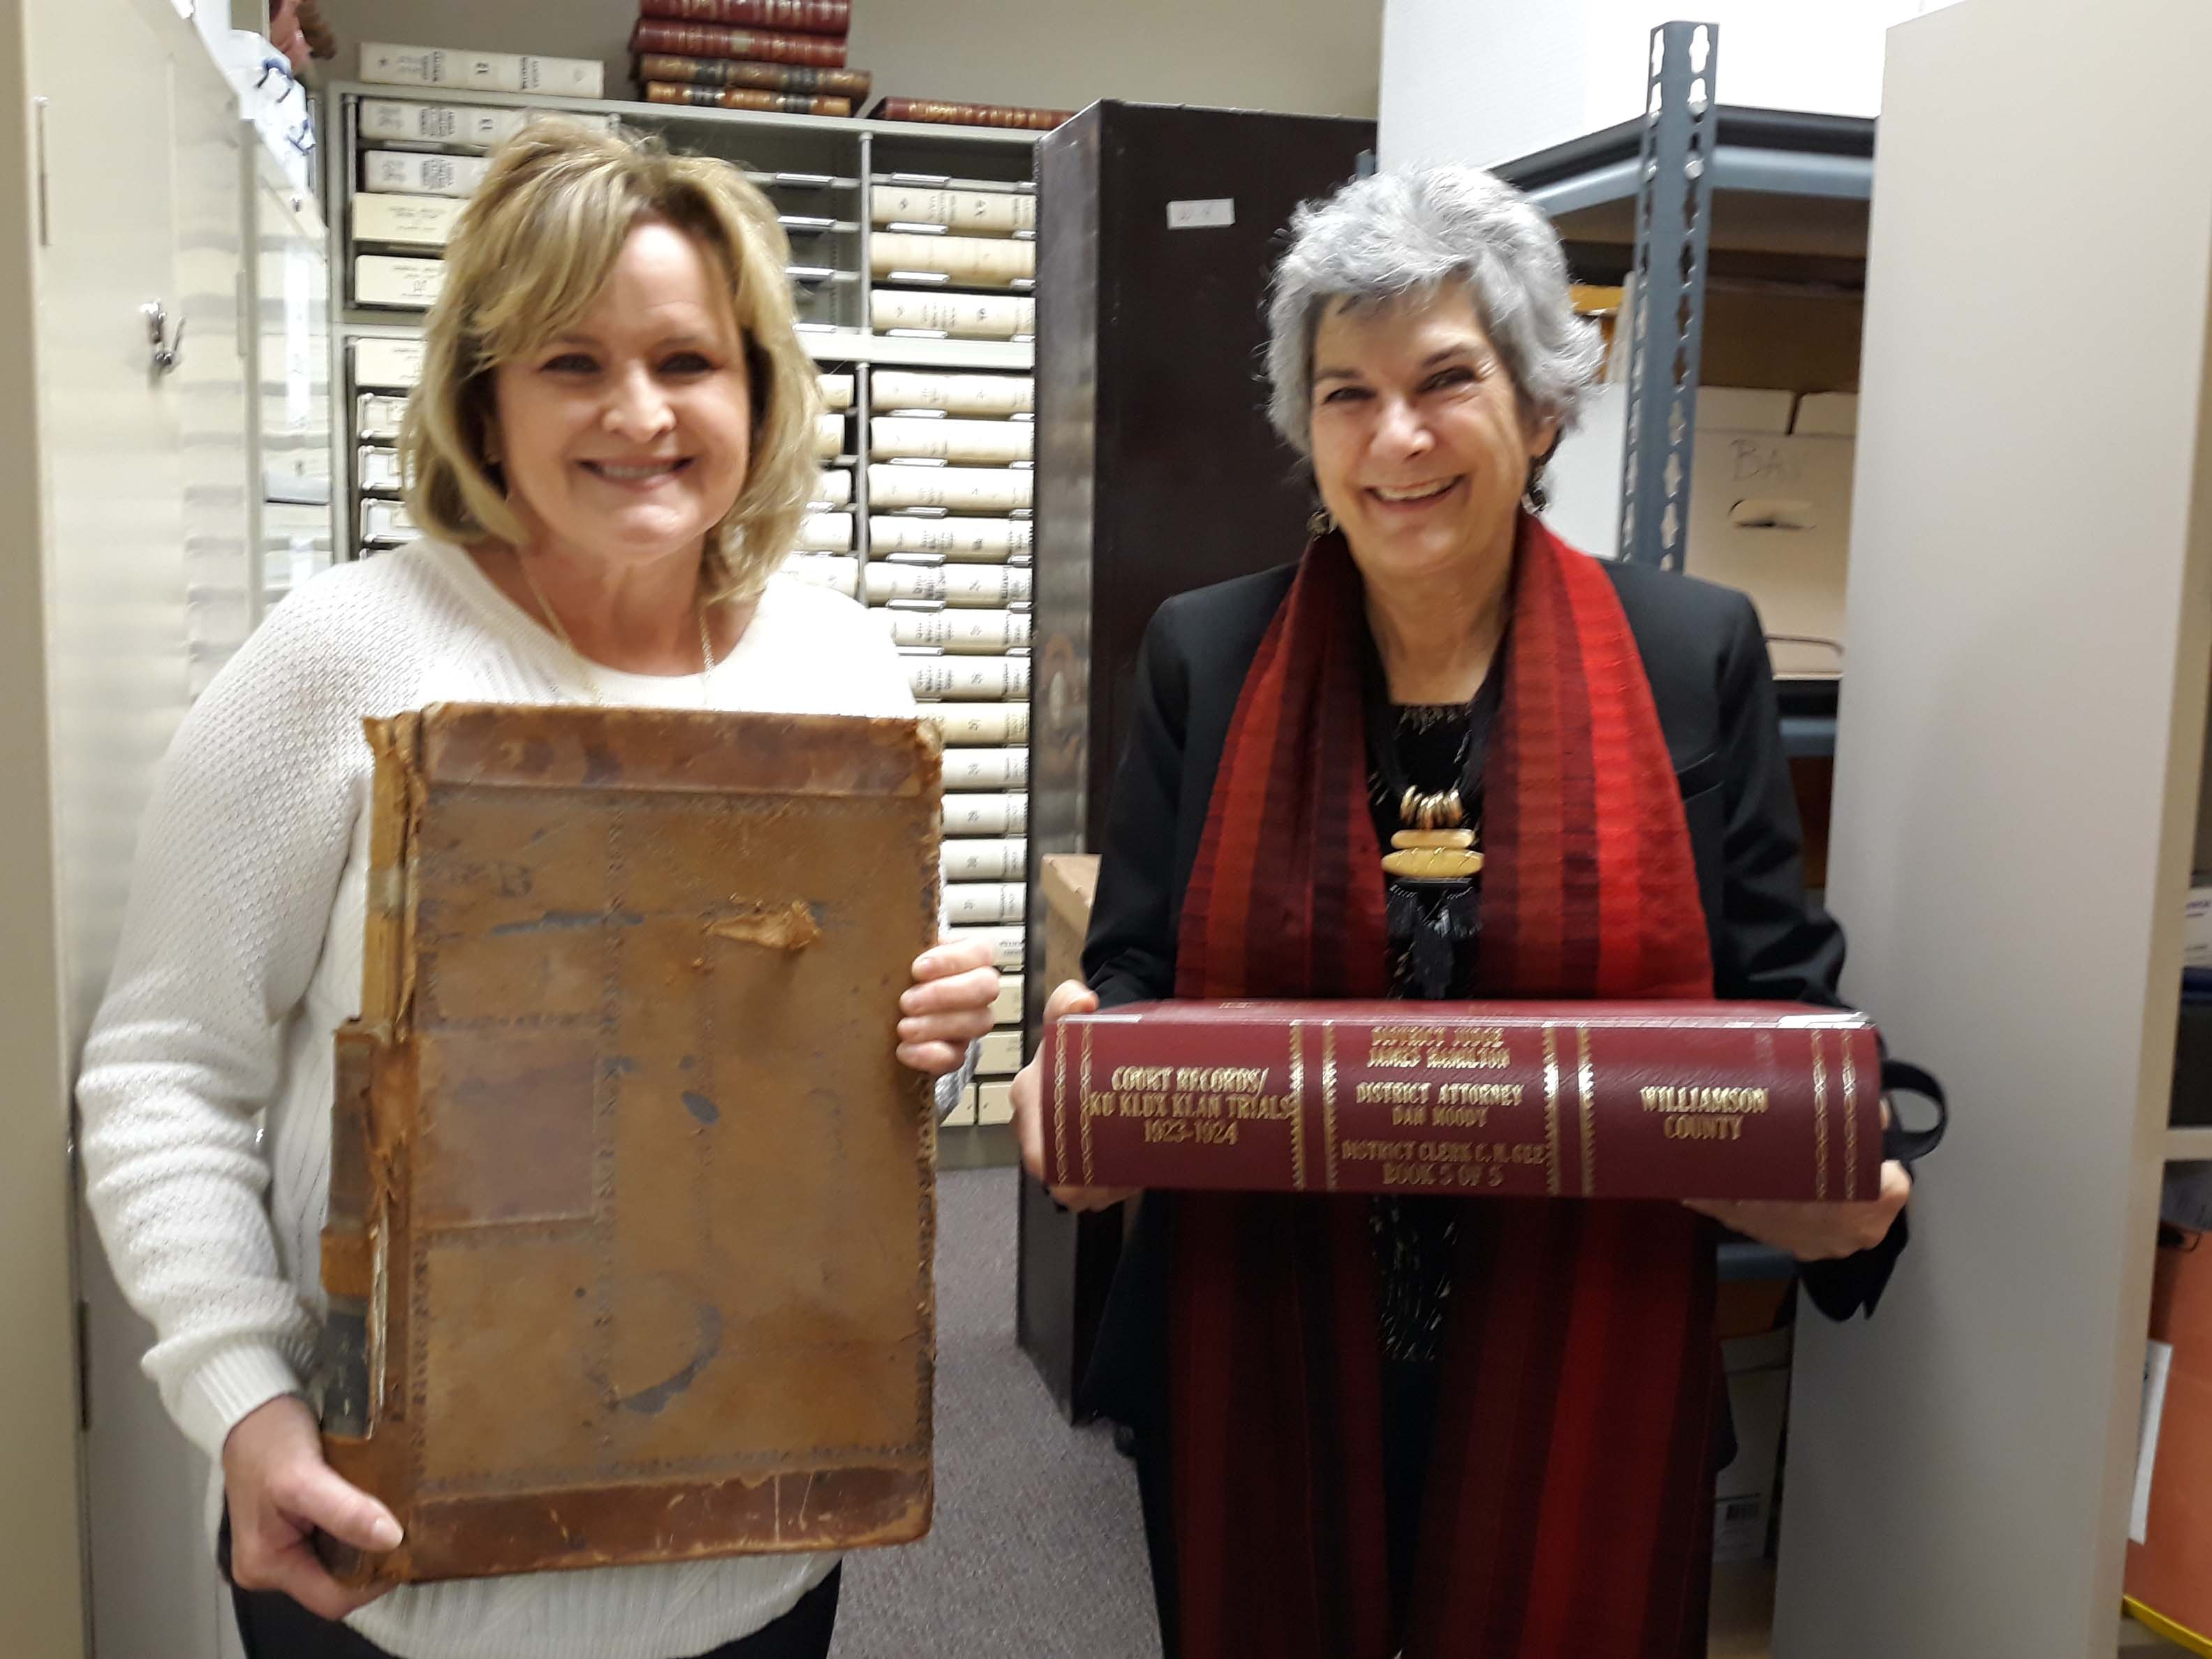 District Clerk Lisa David holds up a historical court file that has not yet been preserved and Commissioner Cook is holding a preserved record of the Ku Klux Klan Trials prosecuted by then District Attorney Dan Moody from 1923-24, who later became Texas' youngest Governor.